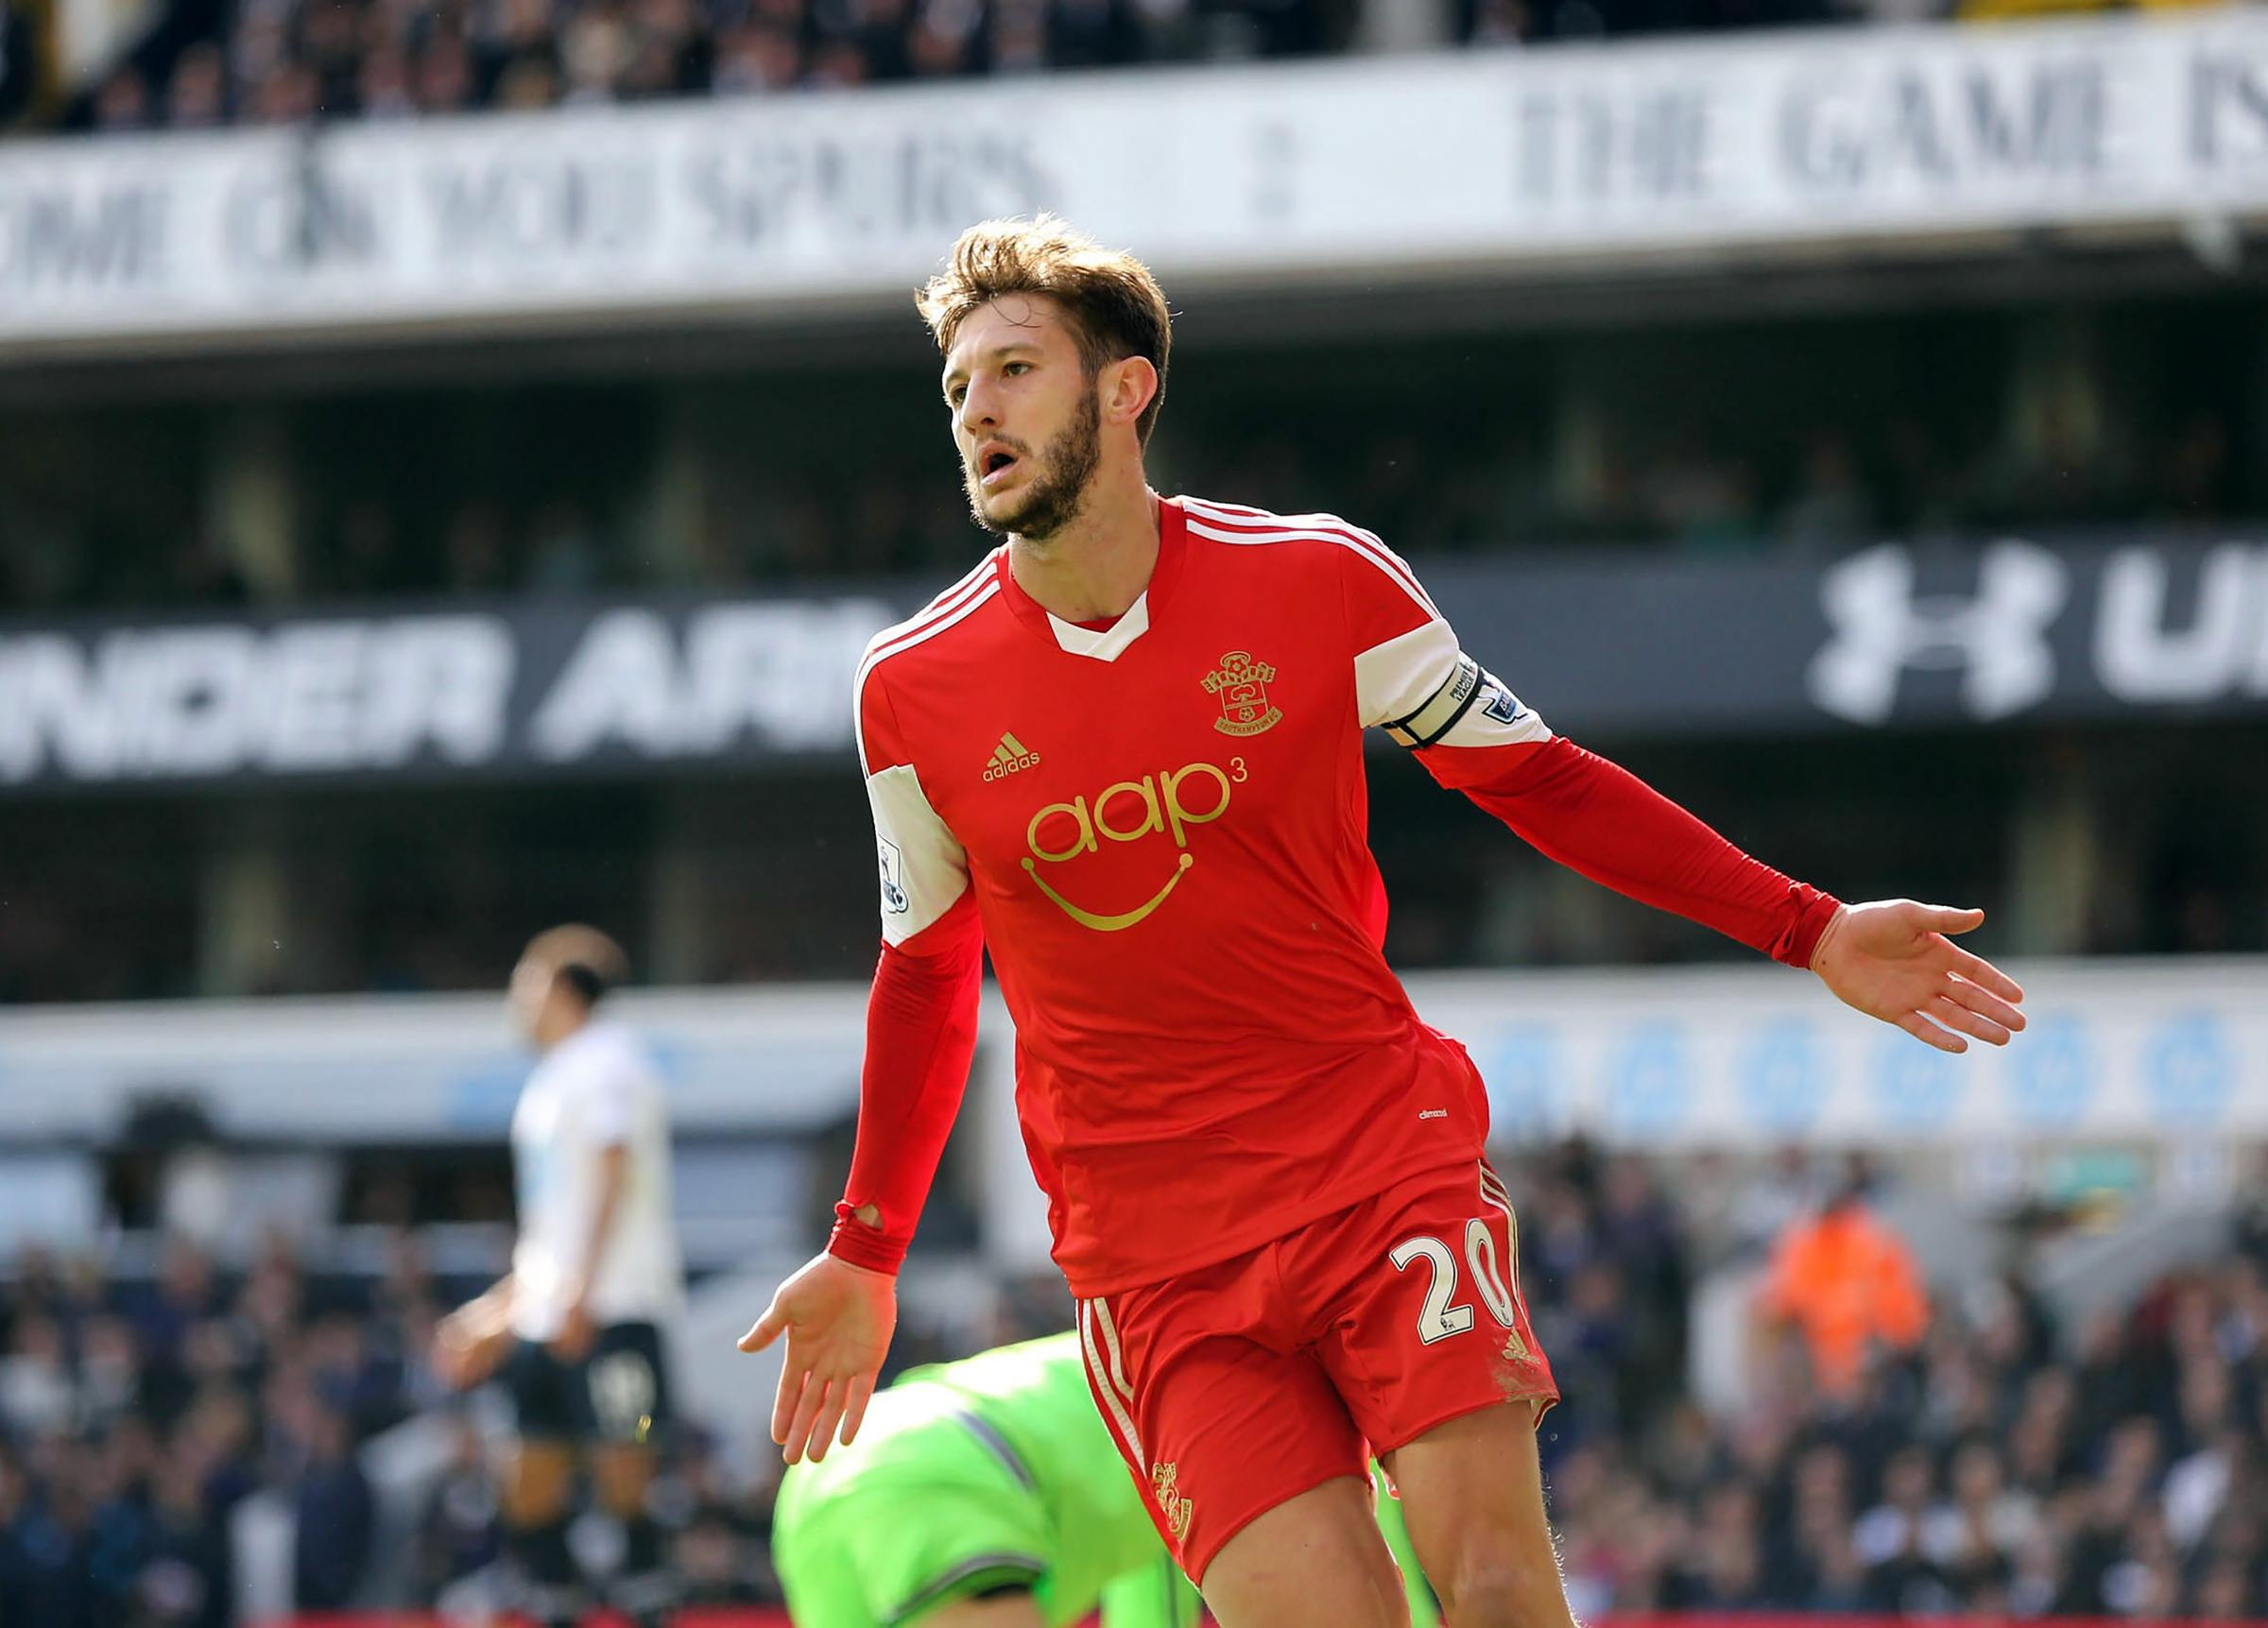 Saints put Liverpool's Lallana ultimatum to the test